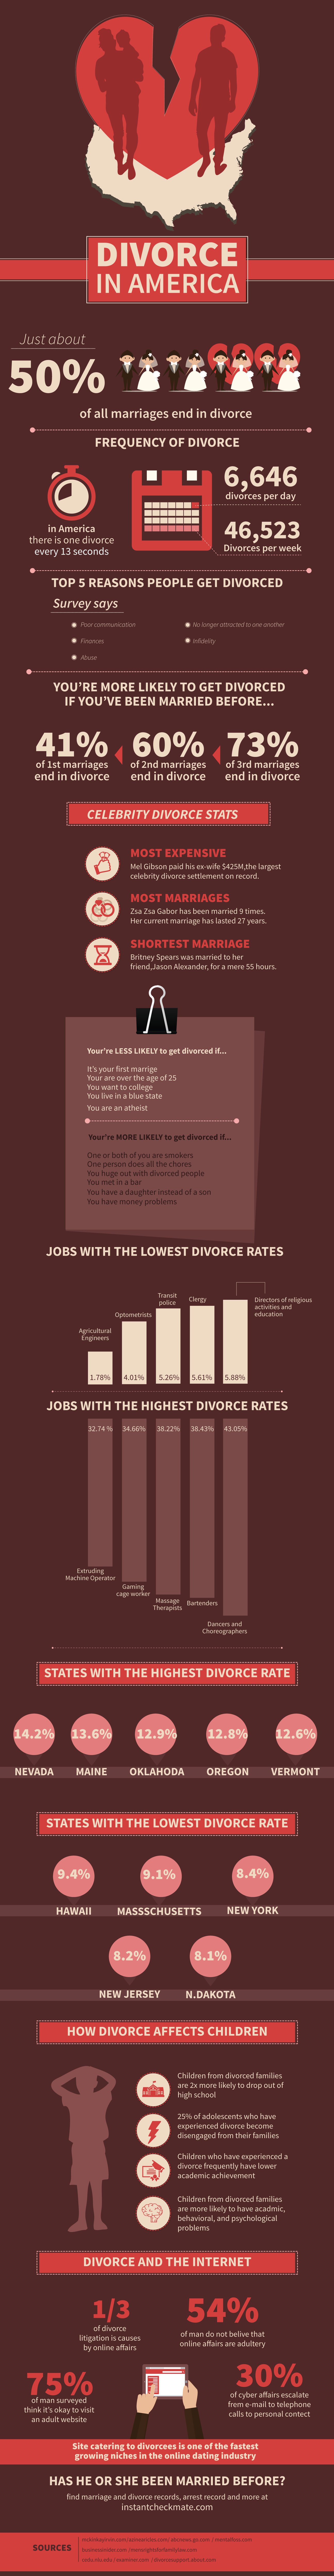 DivorceStats in the U.S.